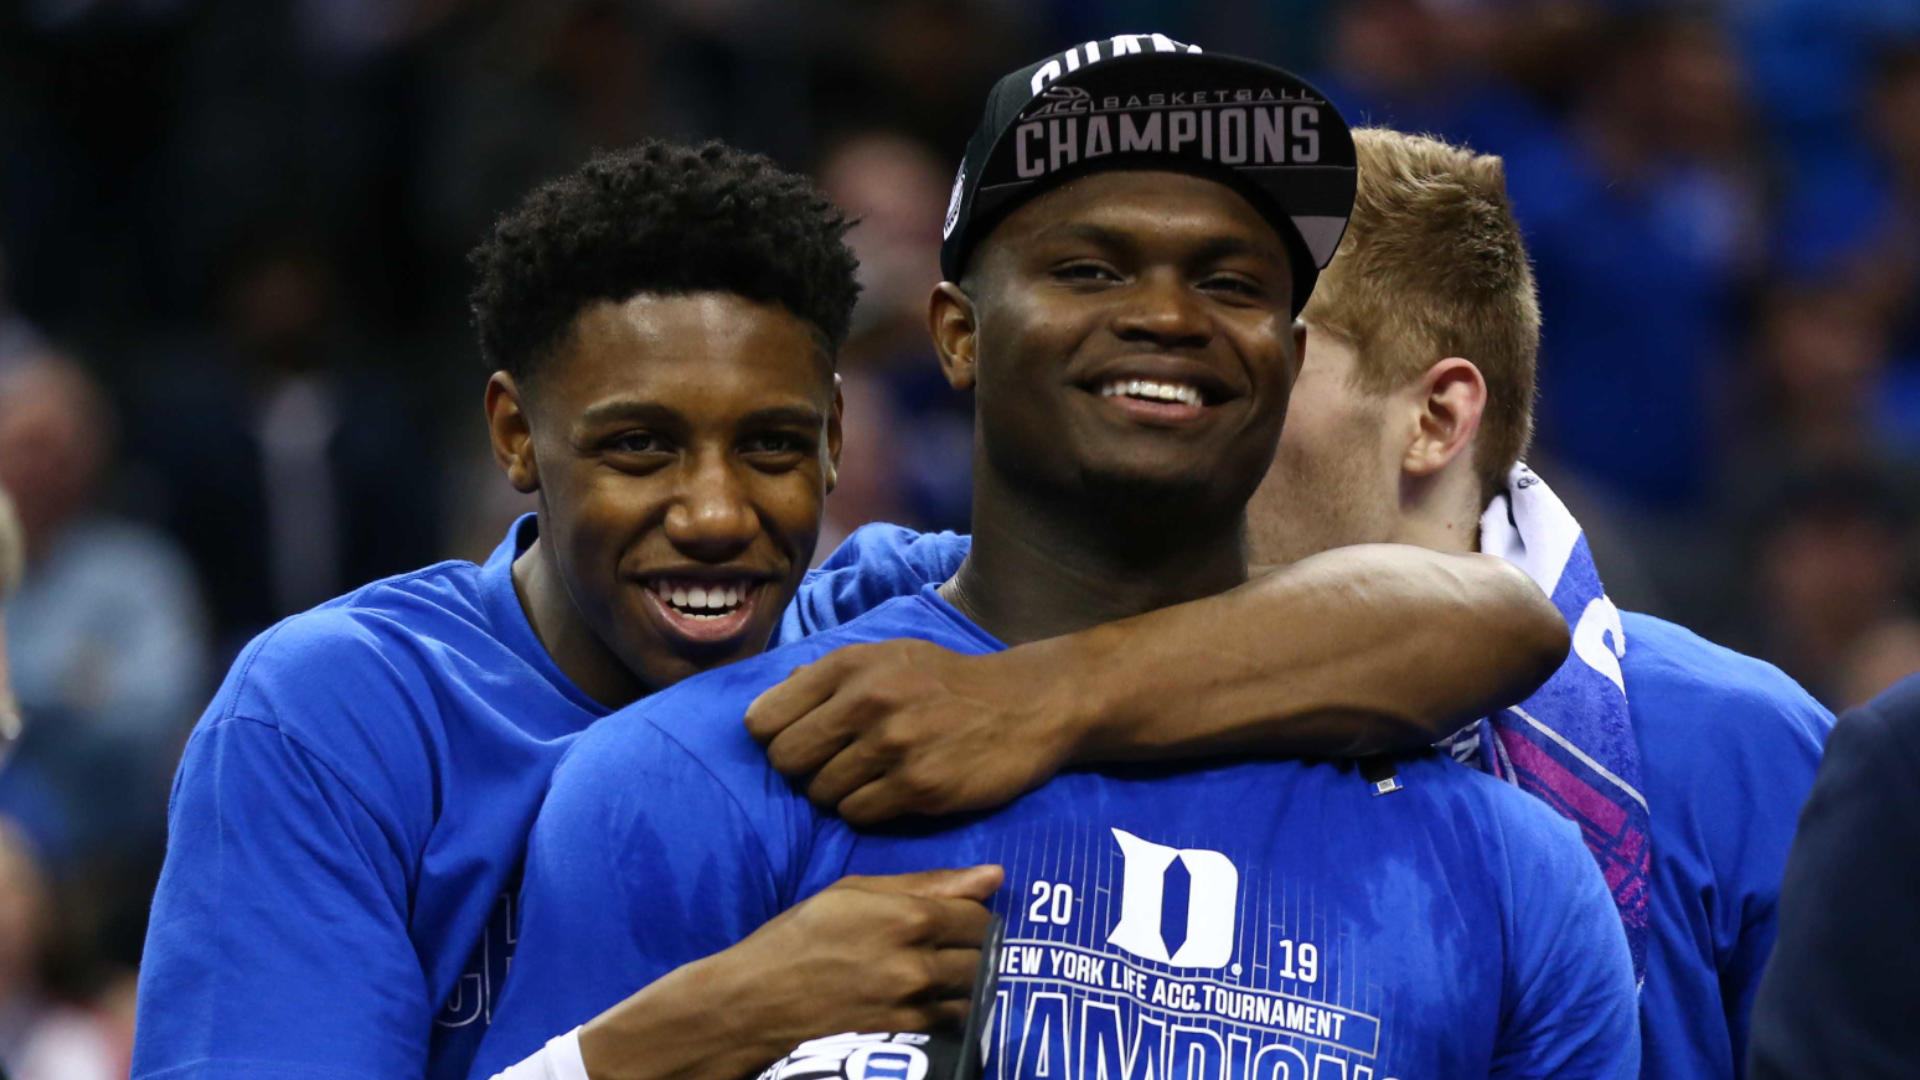 2019 March Madness predictions, NCAA Tournament bracket picks: Expert analysis for first round on Friday